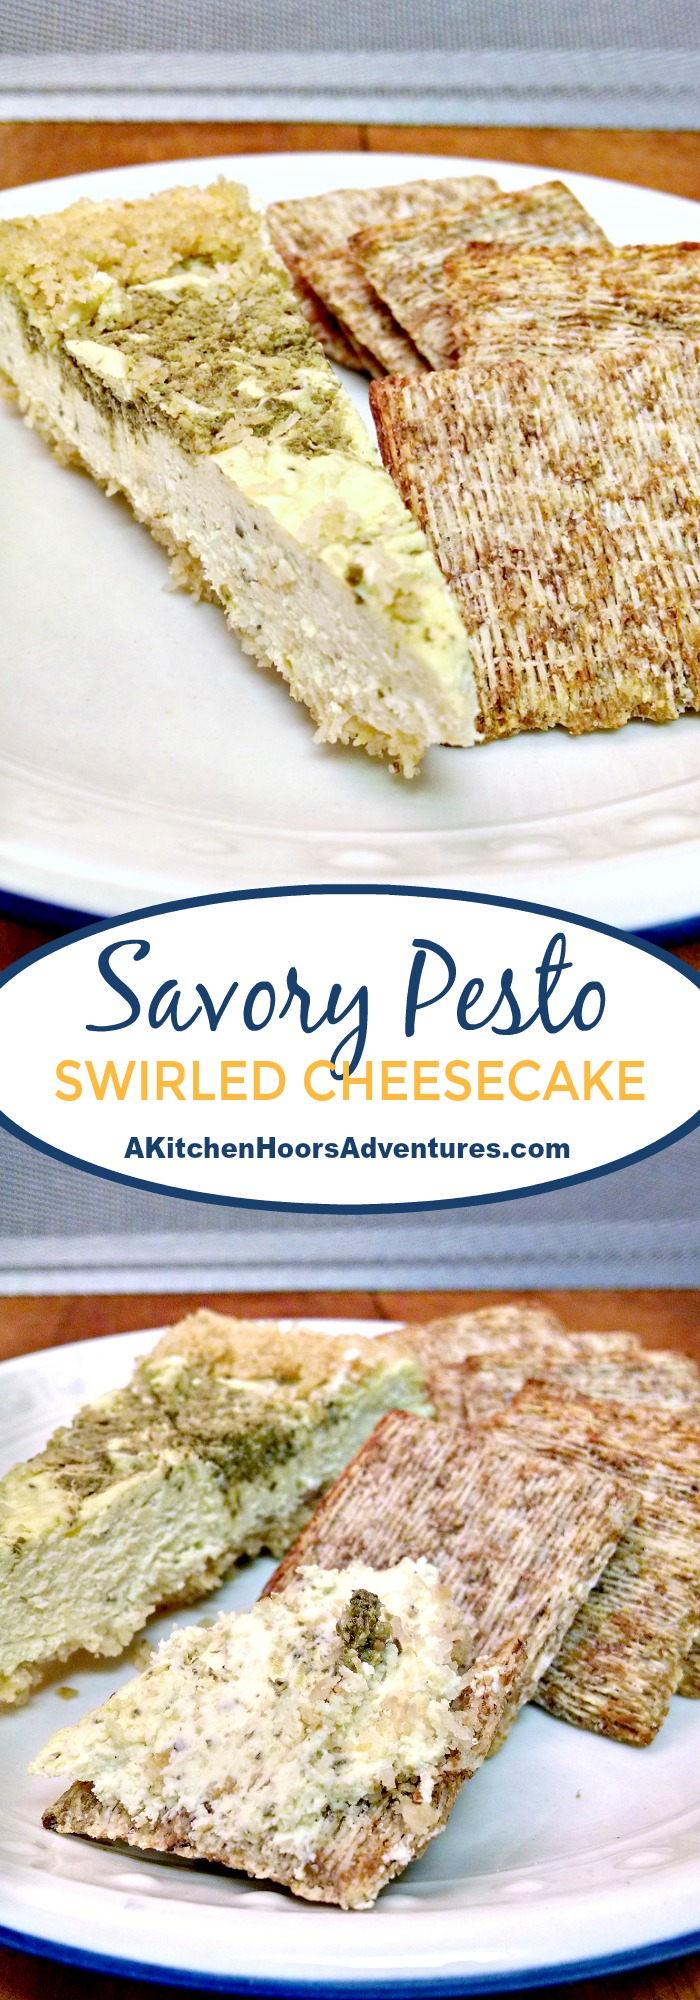 Savory cheesecakes are delicious little surprises!  They're a perfect appetizer for your family gatherings or parties.  This Savory Pesto Swirled Cheesecake is packed with basil flavor and easy to prepare.